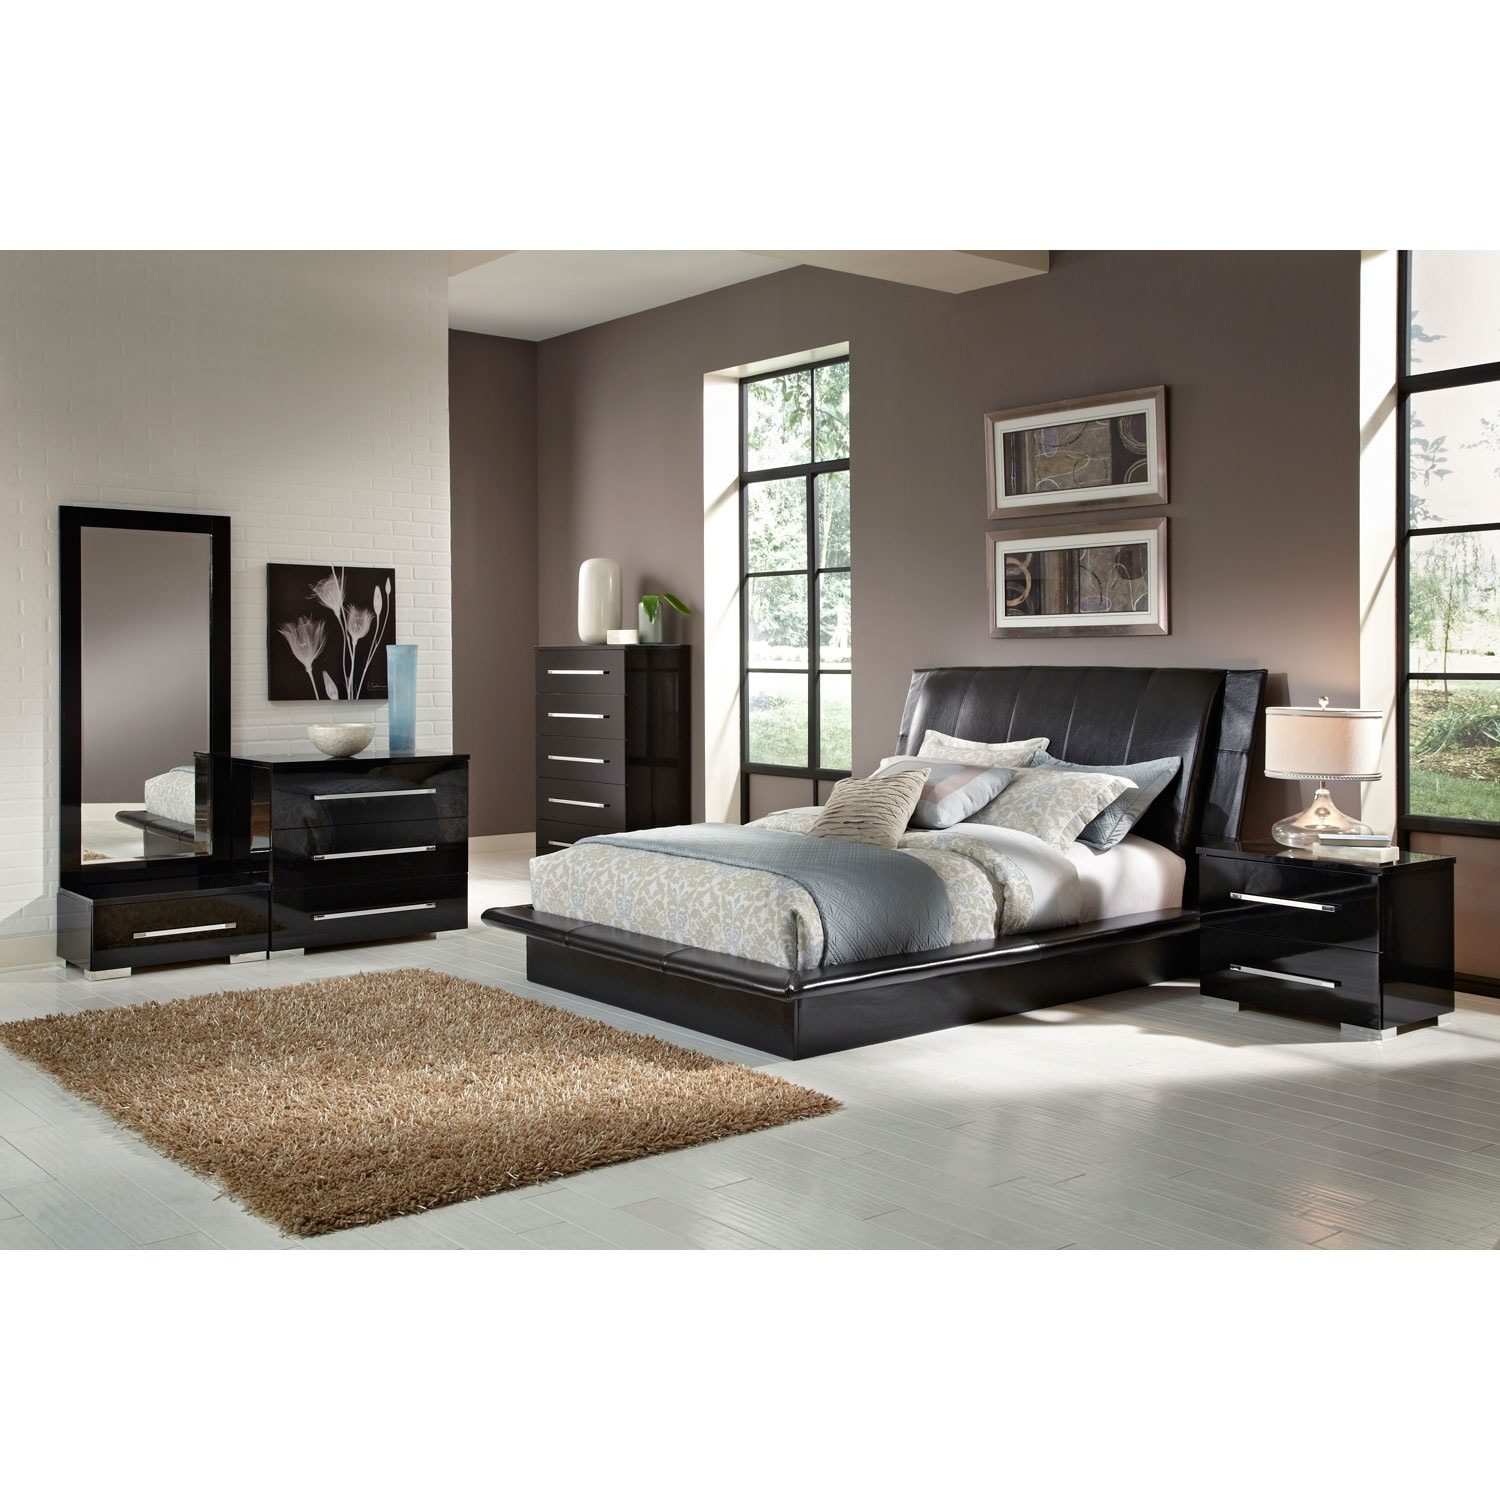 Bedroom Furniture - Dimora Black 7 Pc. King Bedroom (Alternate)